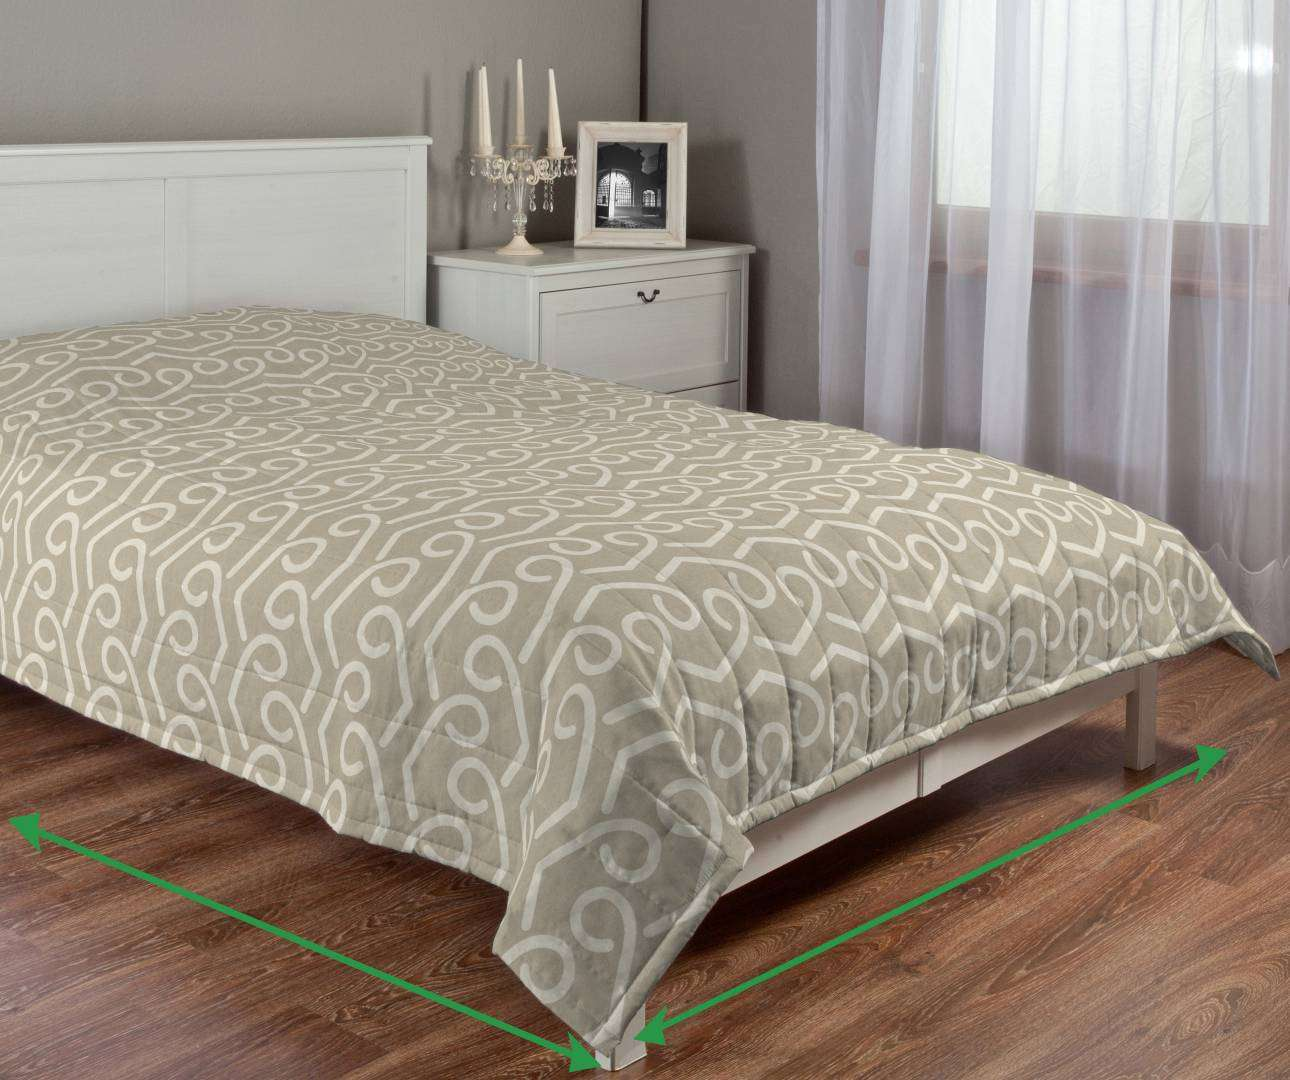 Quilted throw (vertical quilt pattern) in collection Rustica, fabric: 140-58